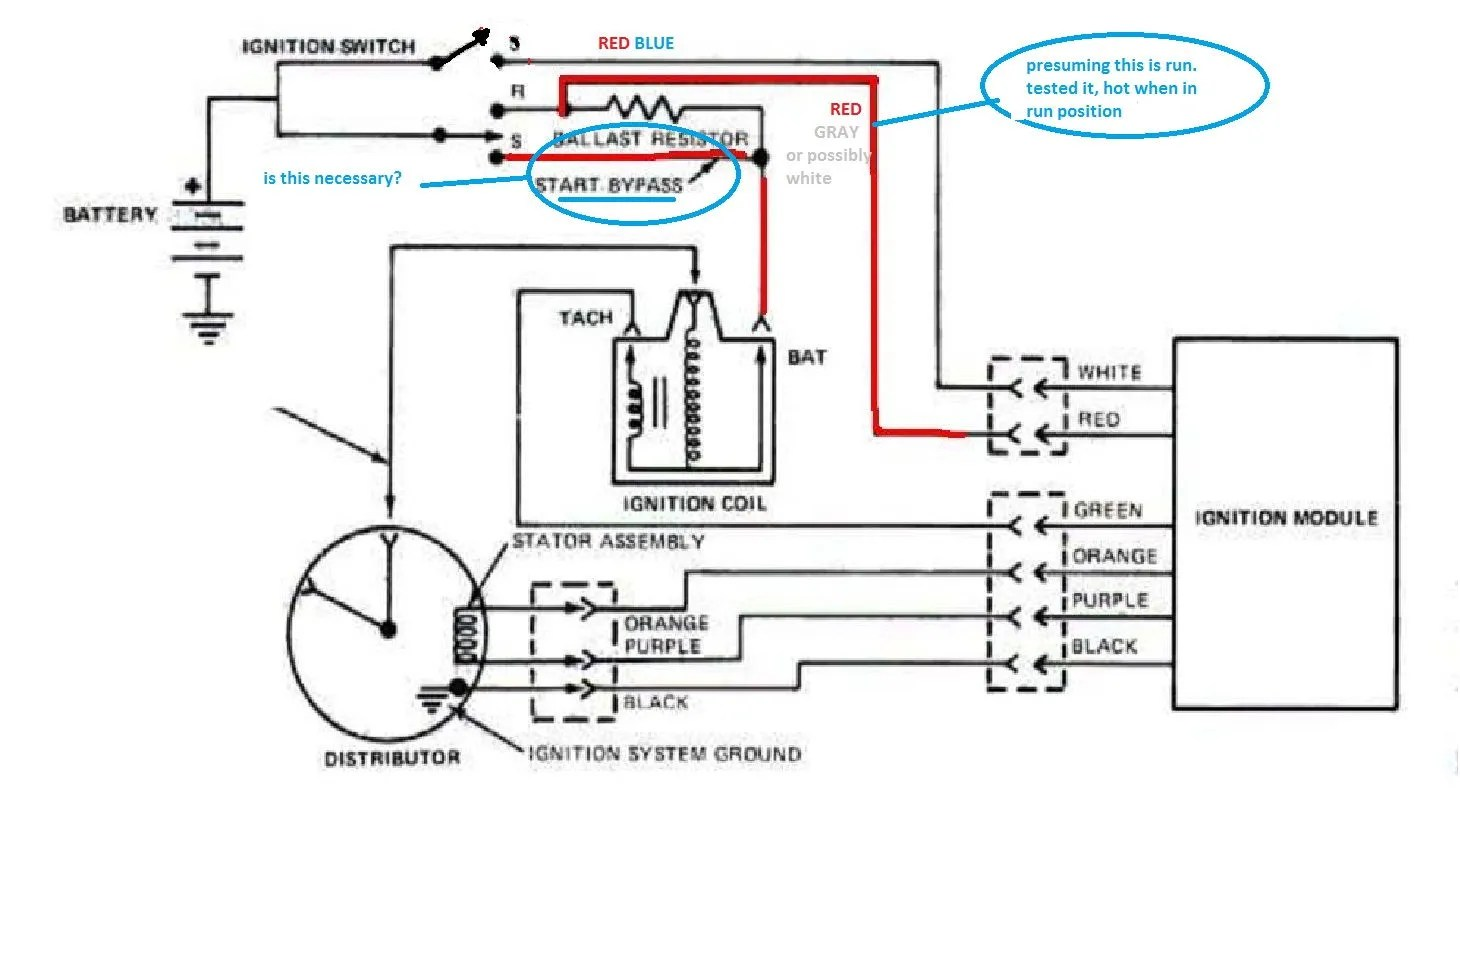 small resolution of hunter thermostat 44260 wiring diagram 2wire trusted wiring diagrams hunter thermostat 44155c wiring diagram hunter thermostat 44260 wiring